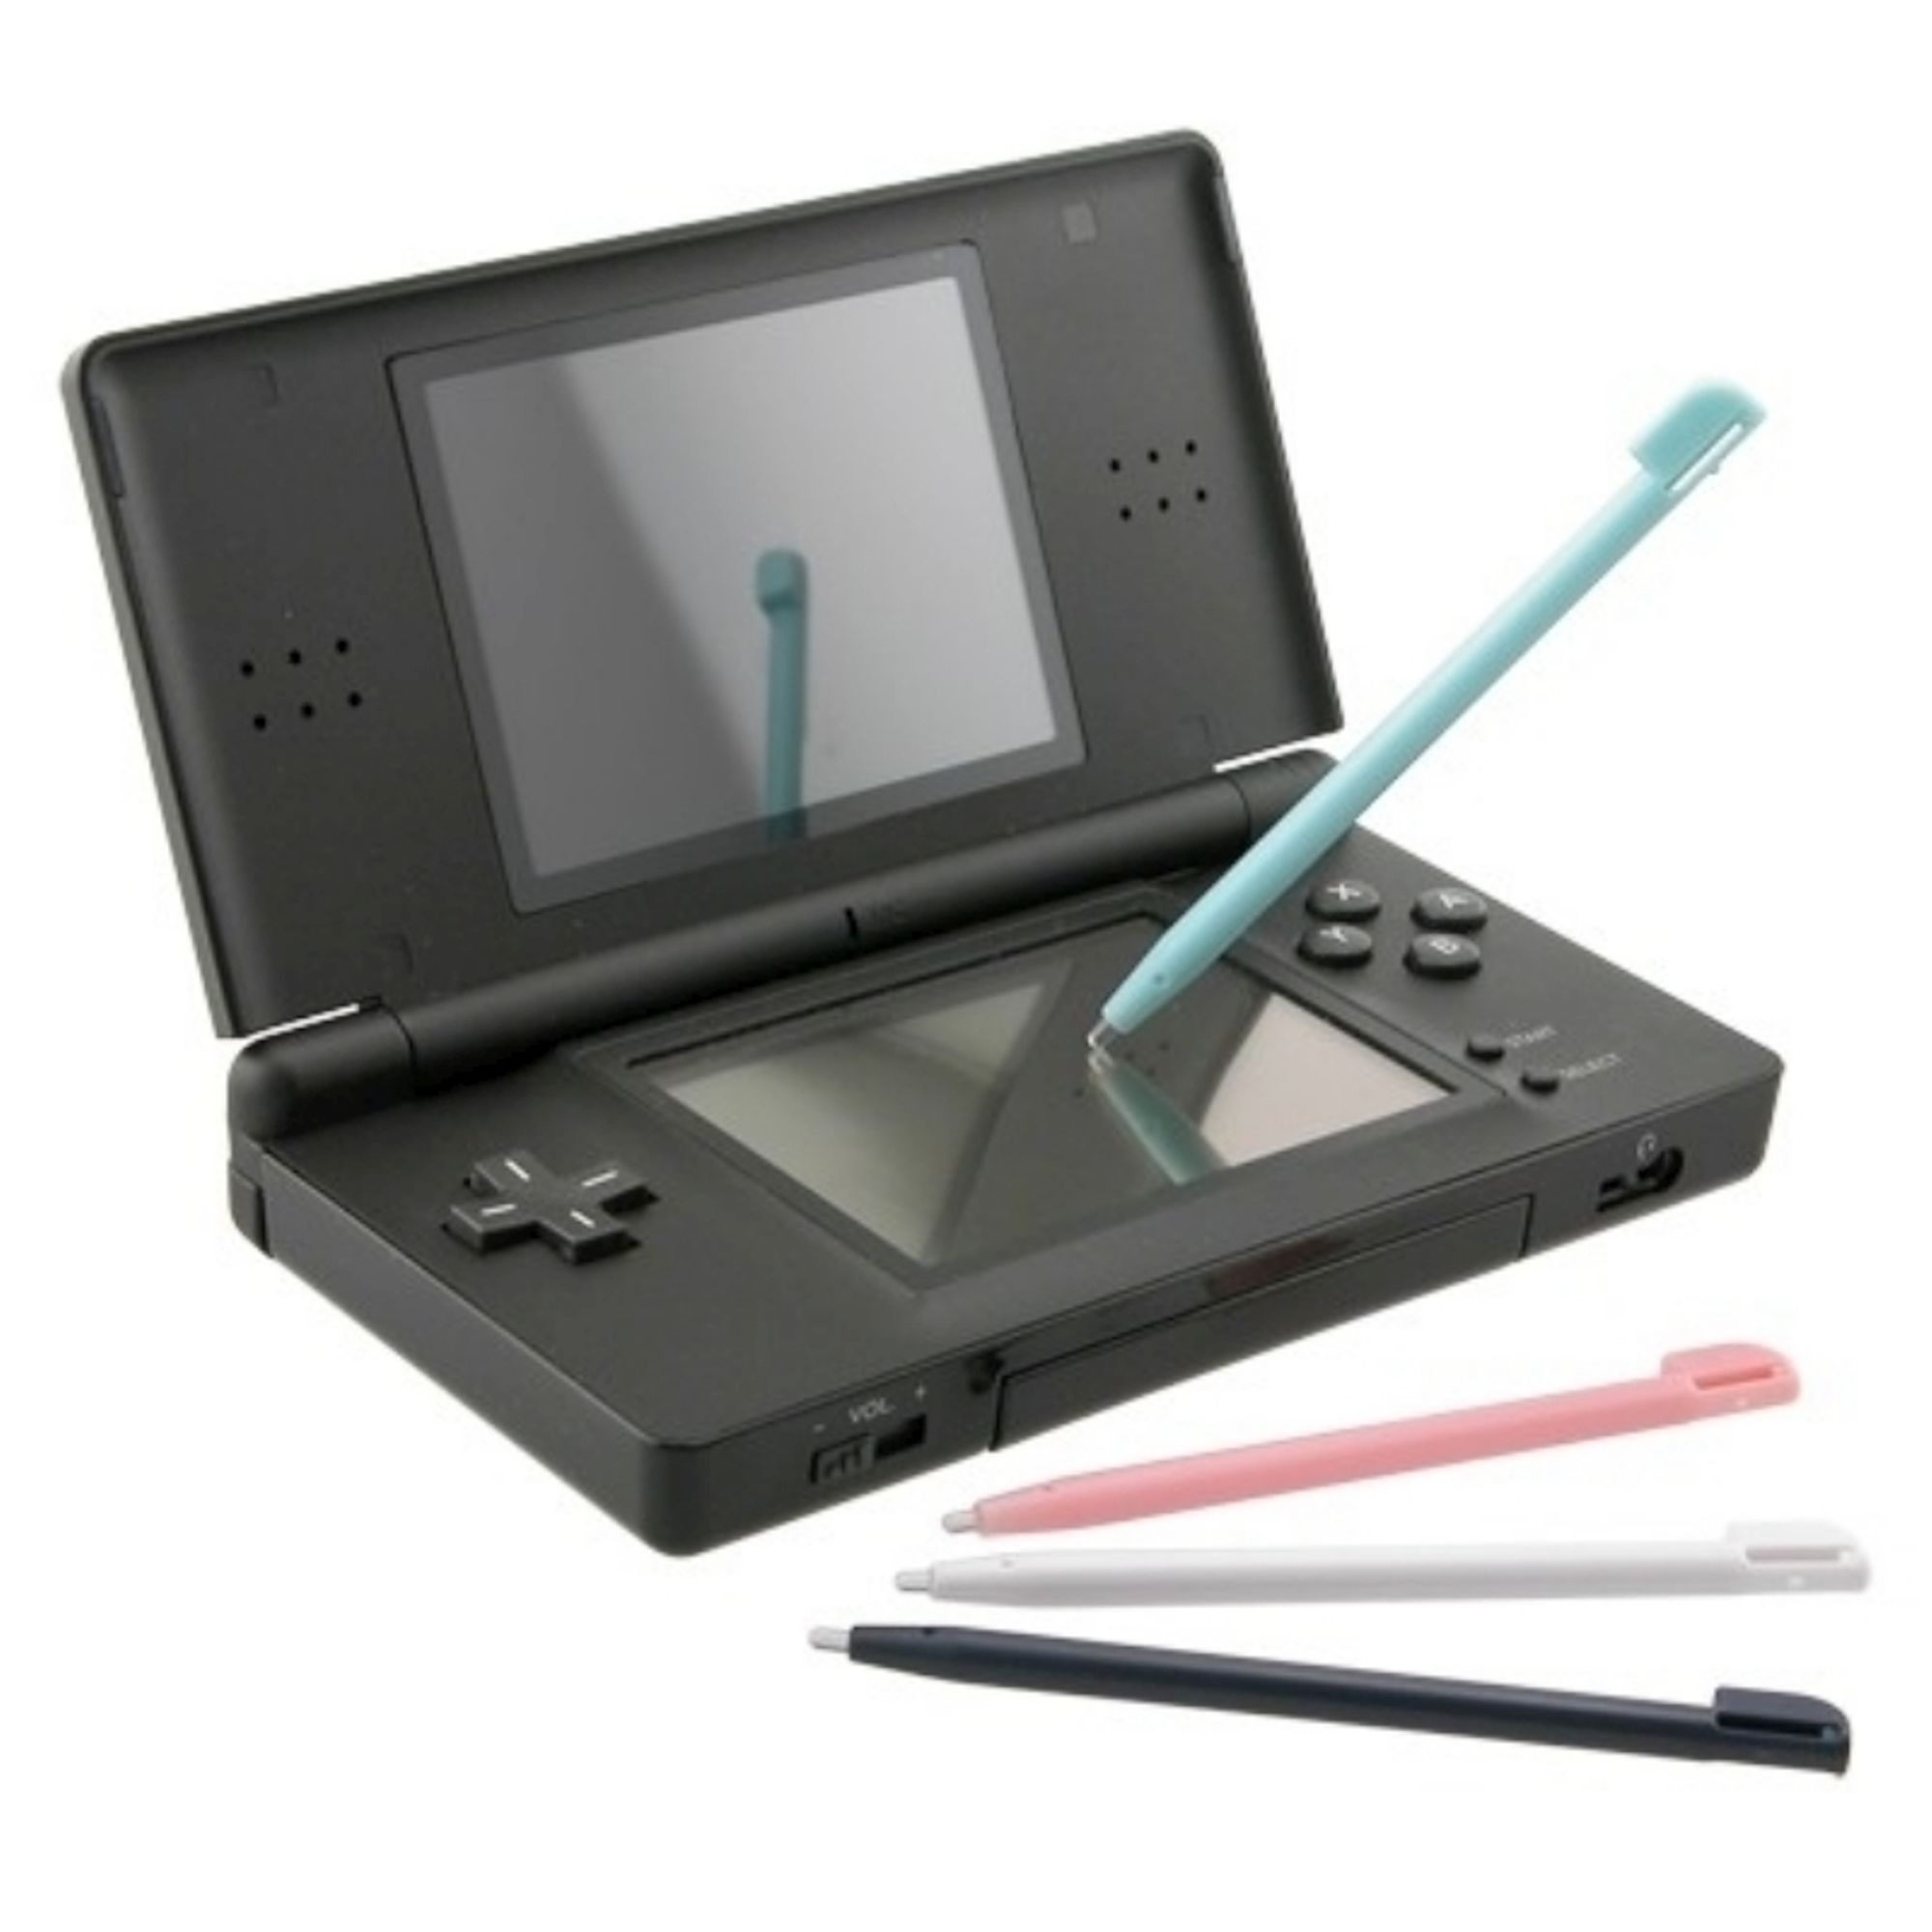 40-Pack Stylus Pen For Nintendo NDSL DS Lite Touch Screen by Insten